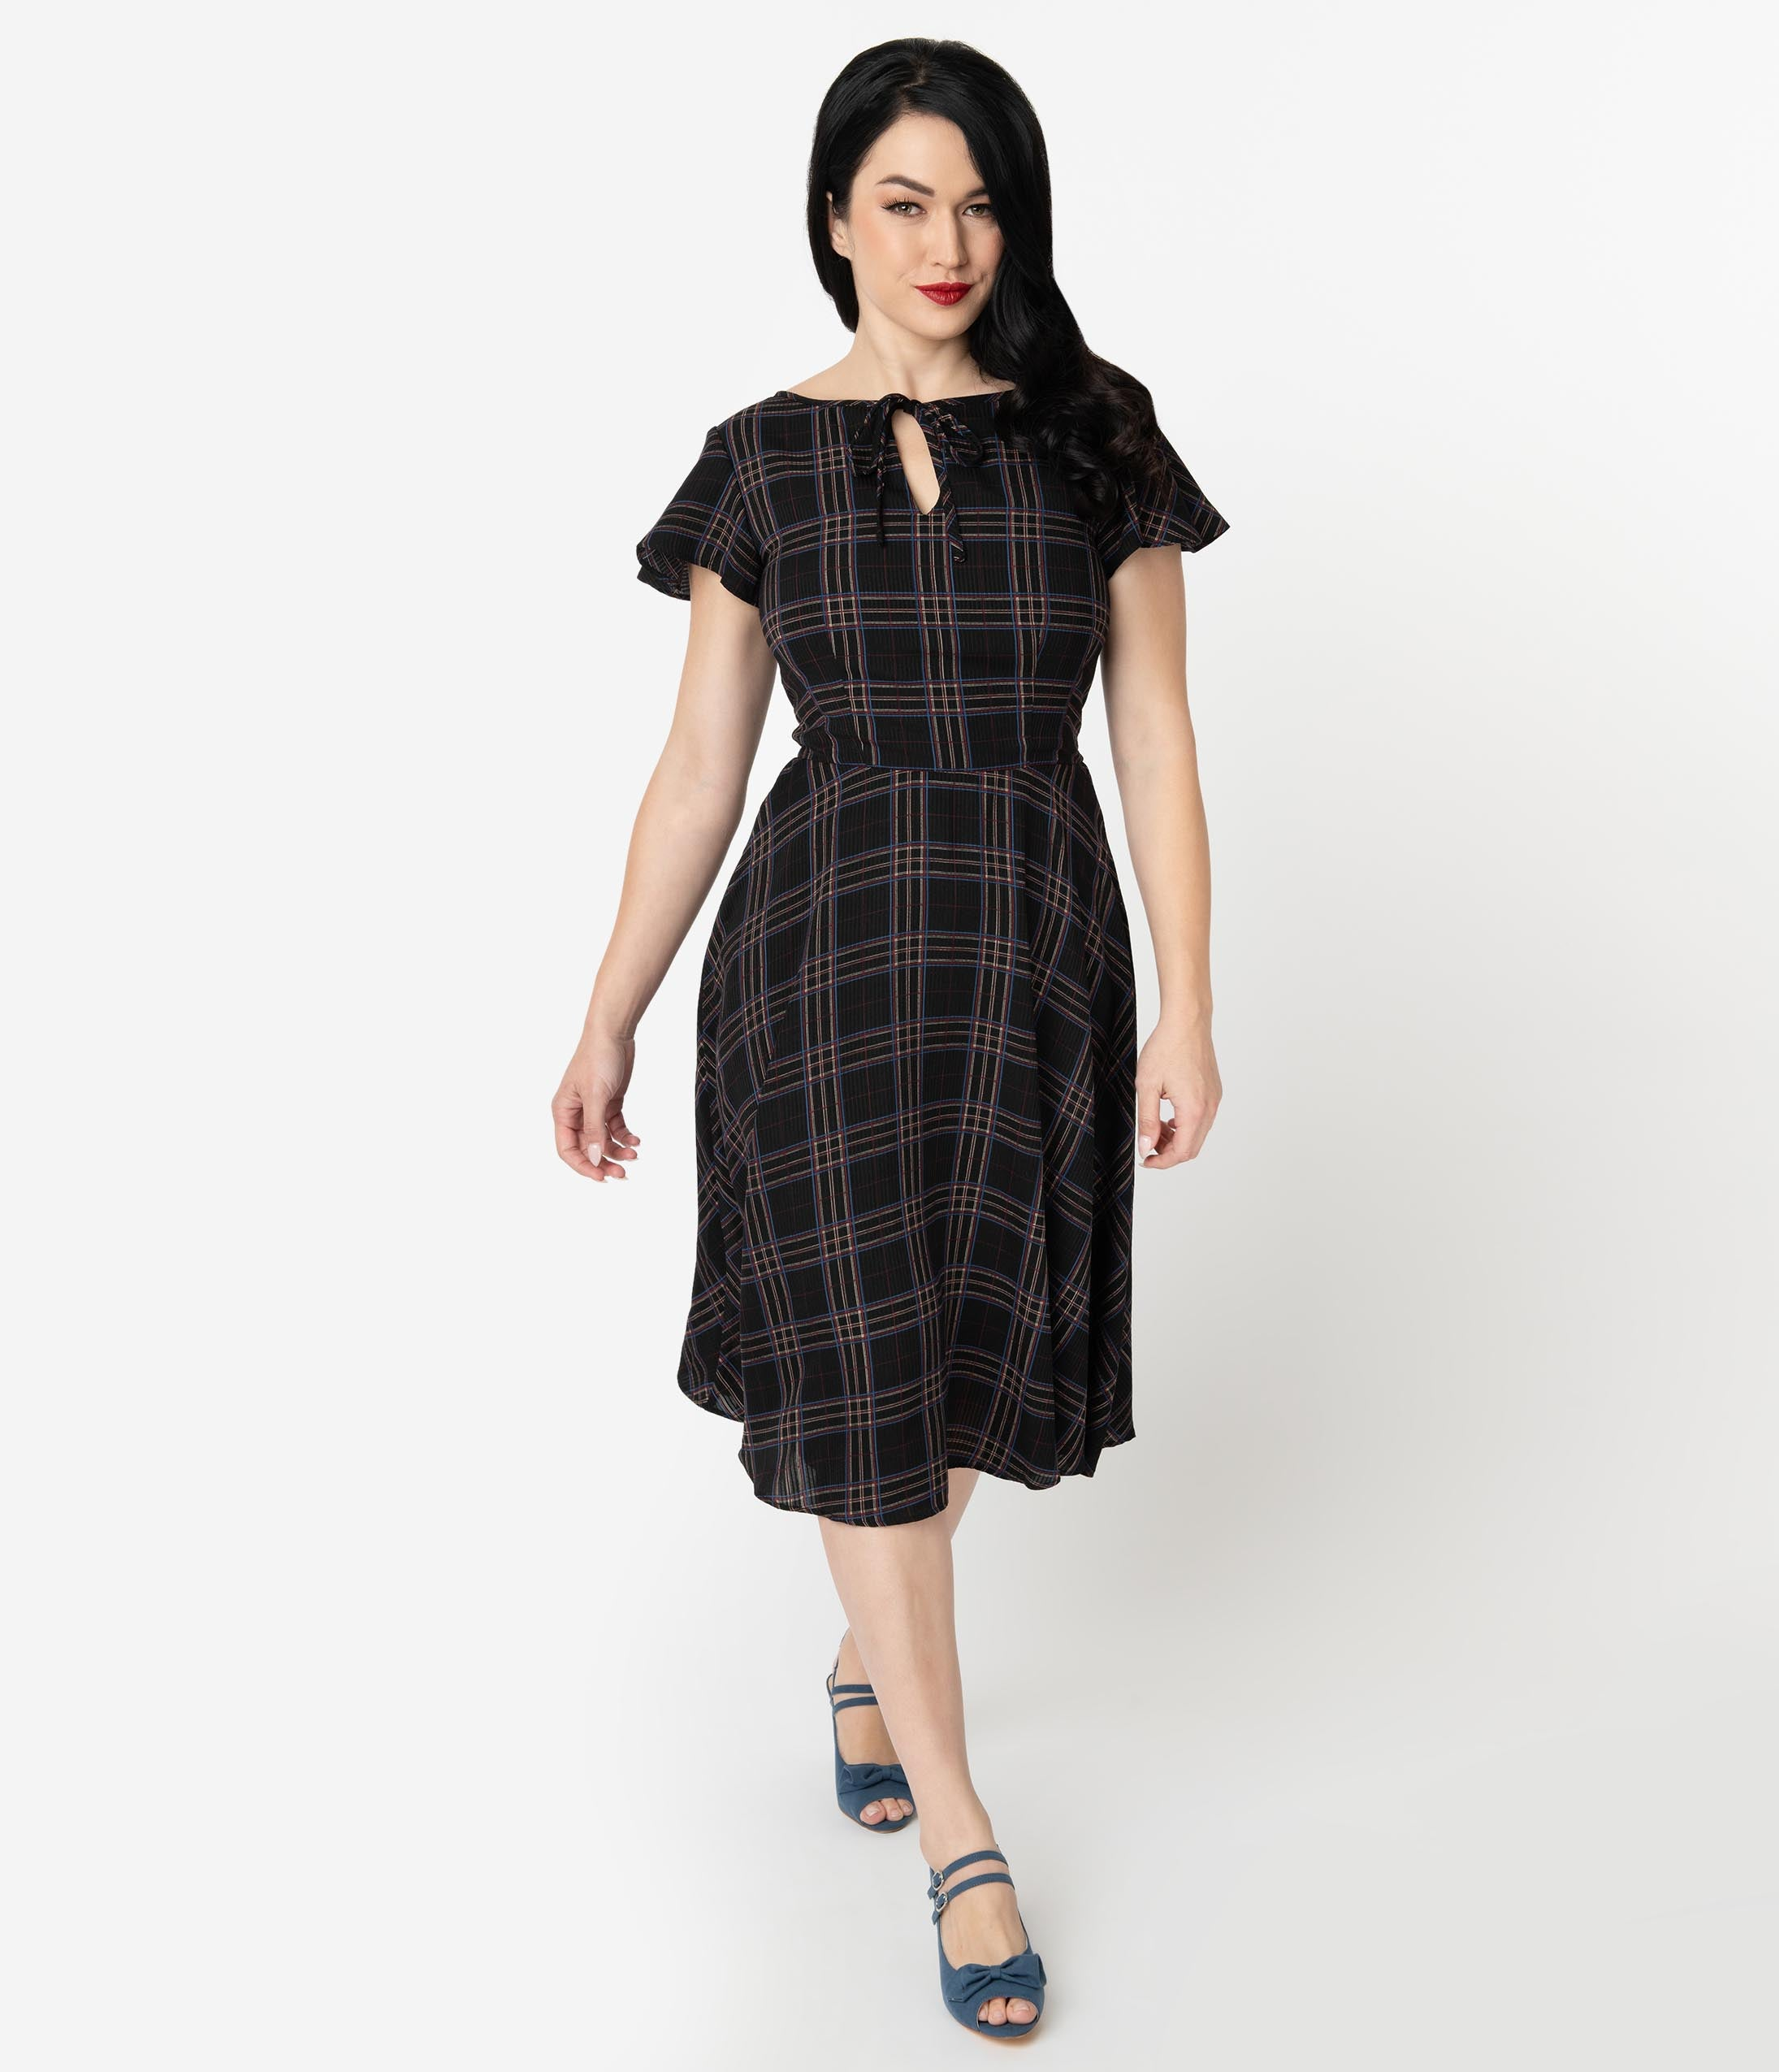 500 Vintage Style Dresses for Sale | Vintage Inspired Dresses Unique Vintage 1940S Style Black Plaid Formosa Swing Dress $88.00 AT vintagedancer.com